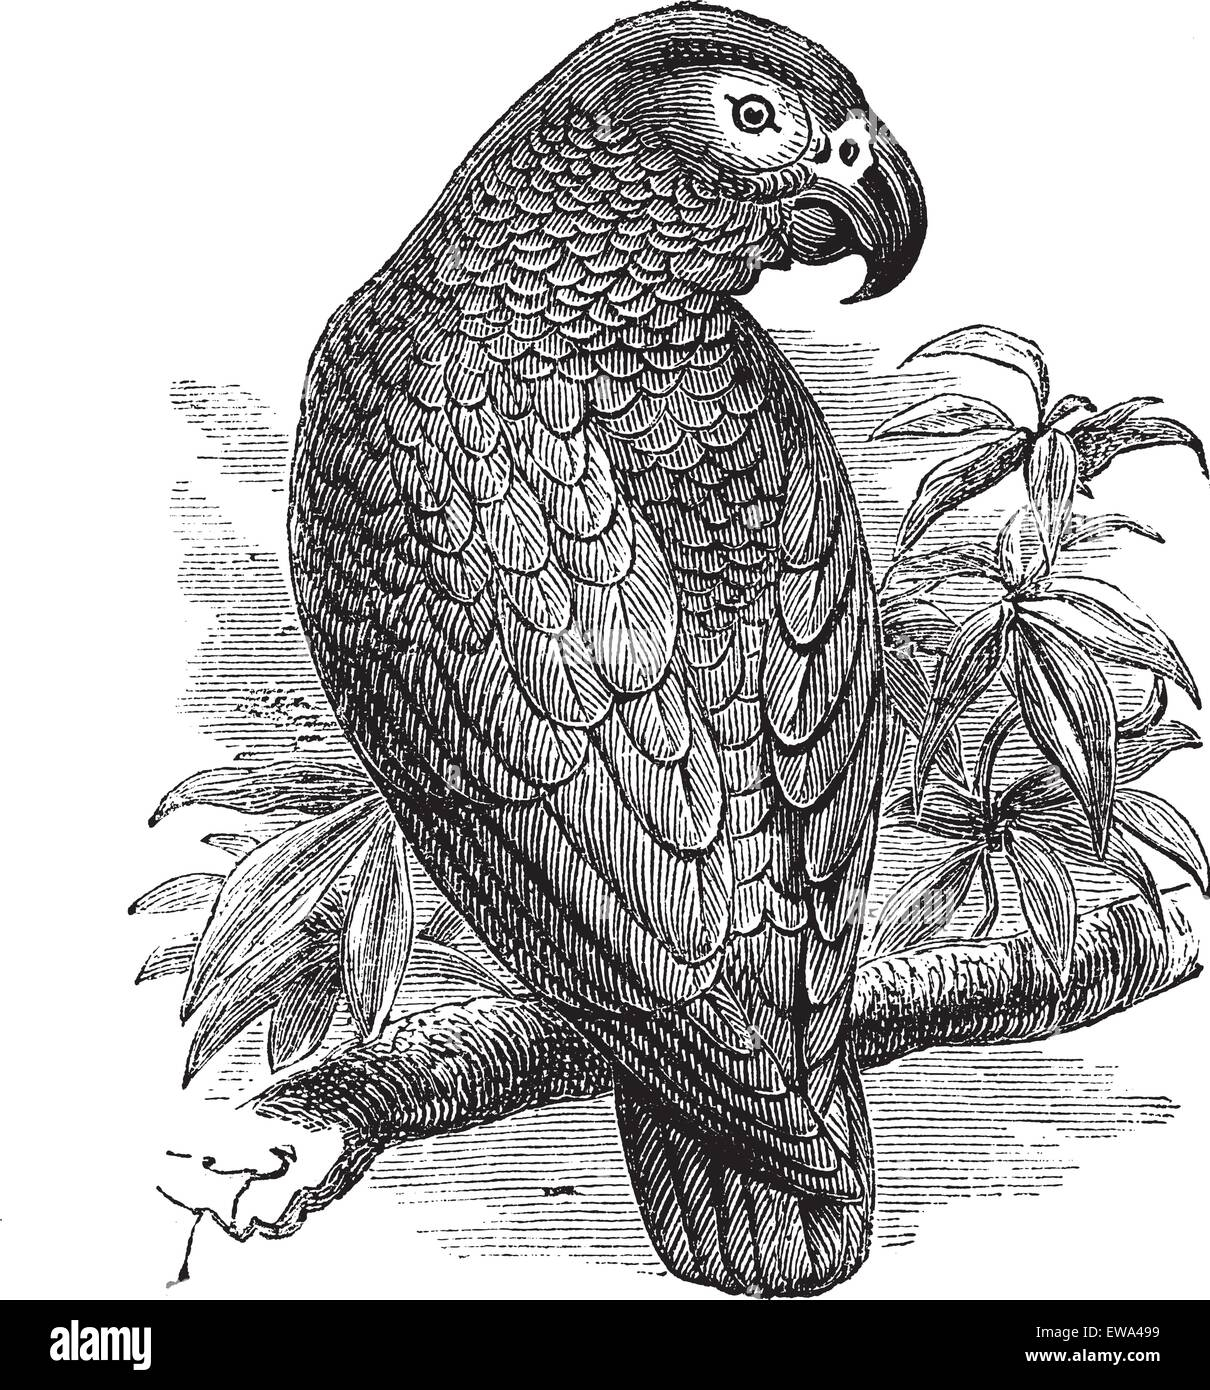 African Grey Parrot or Psittacus erithacus or Grey Parrot, vintage engraving. Old engraved illustration of African - Stock Vector